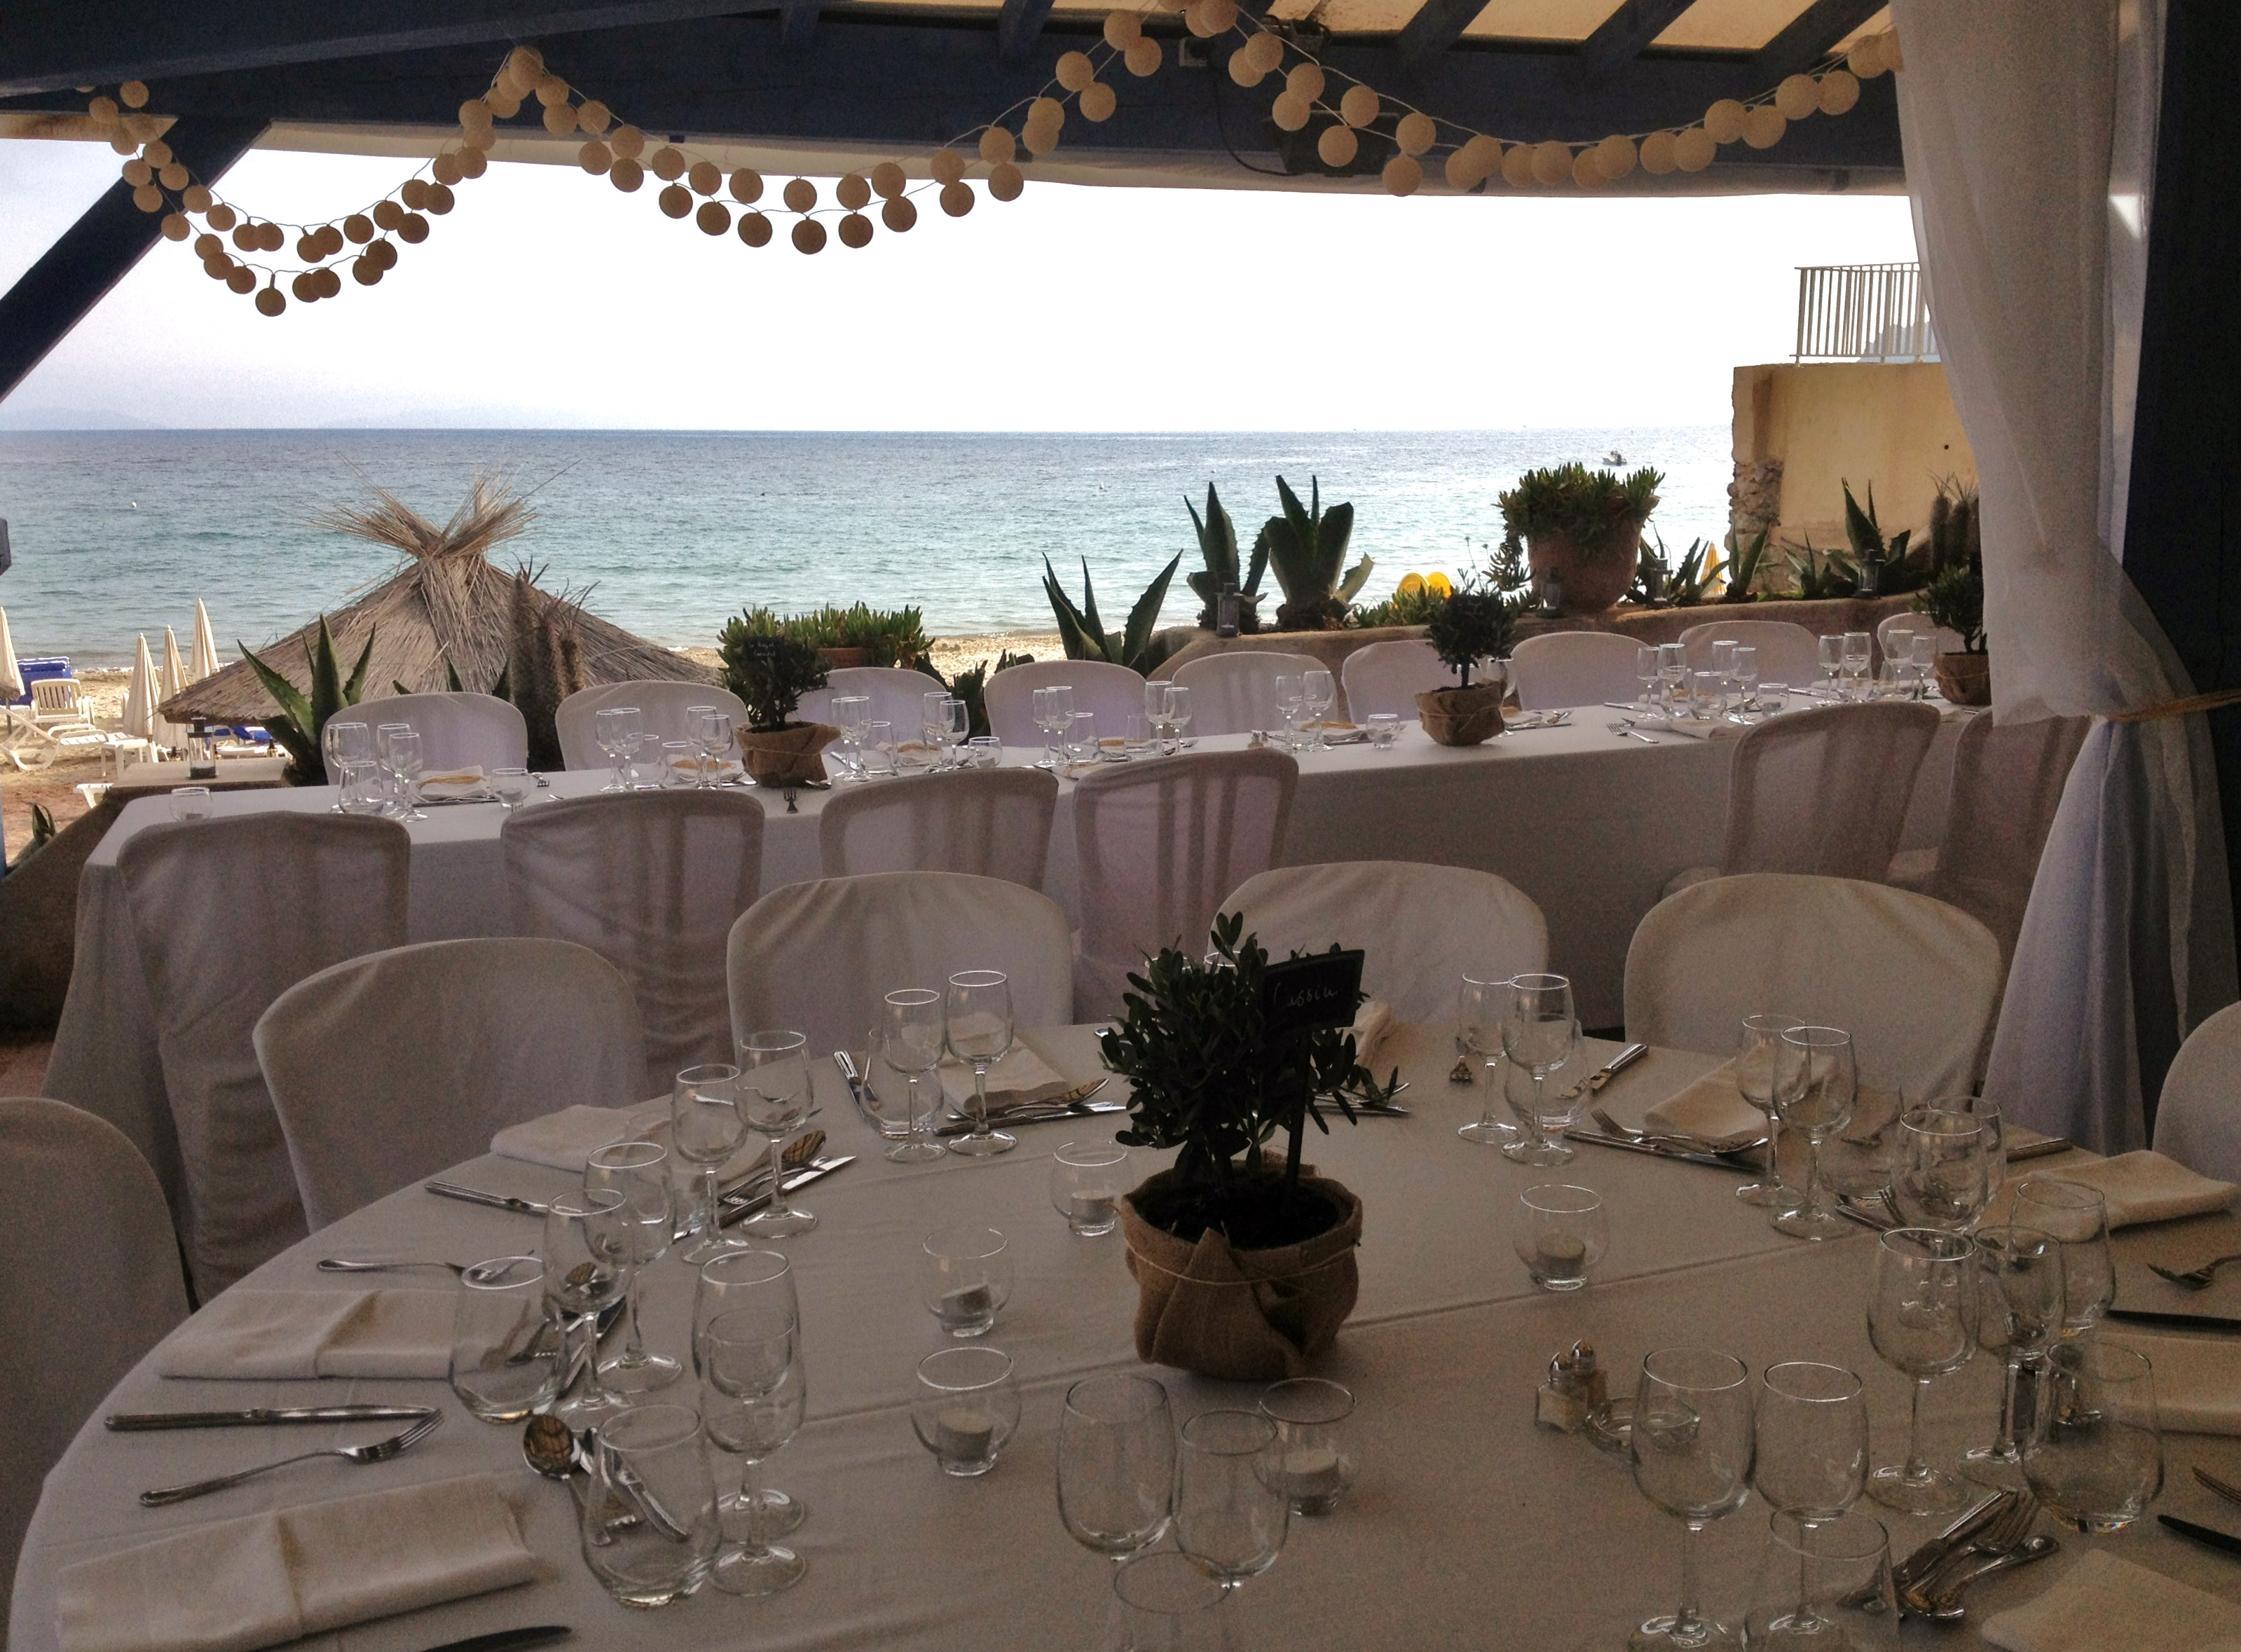 ... re looking for a magical beach wedding venue in the south of France